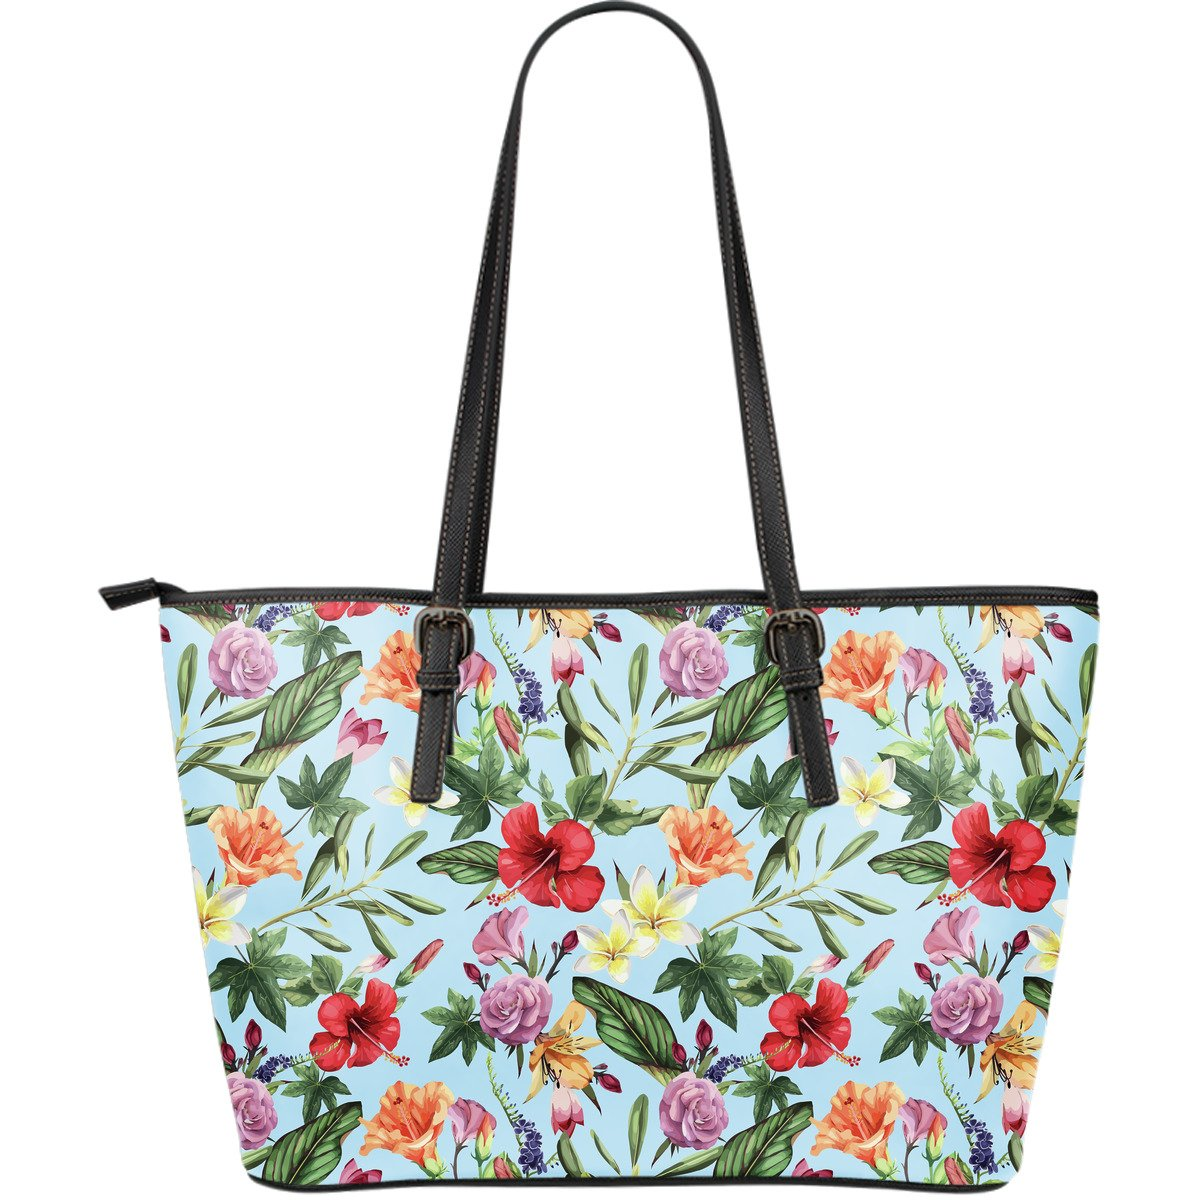 Hibiscus Flower Floral Pattern Print Leather Tote Bag GearFrost